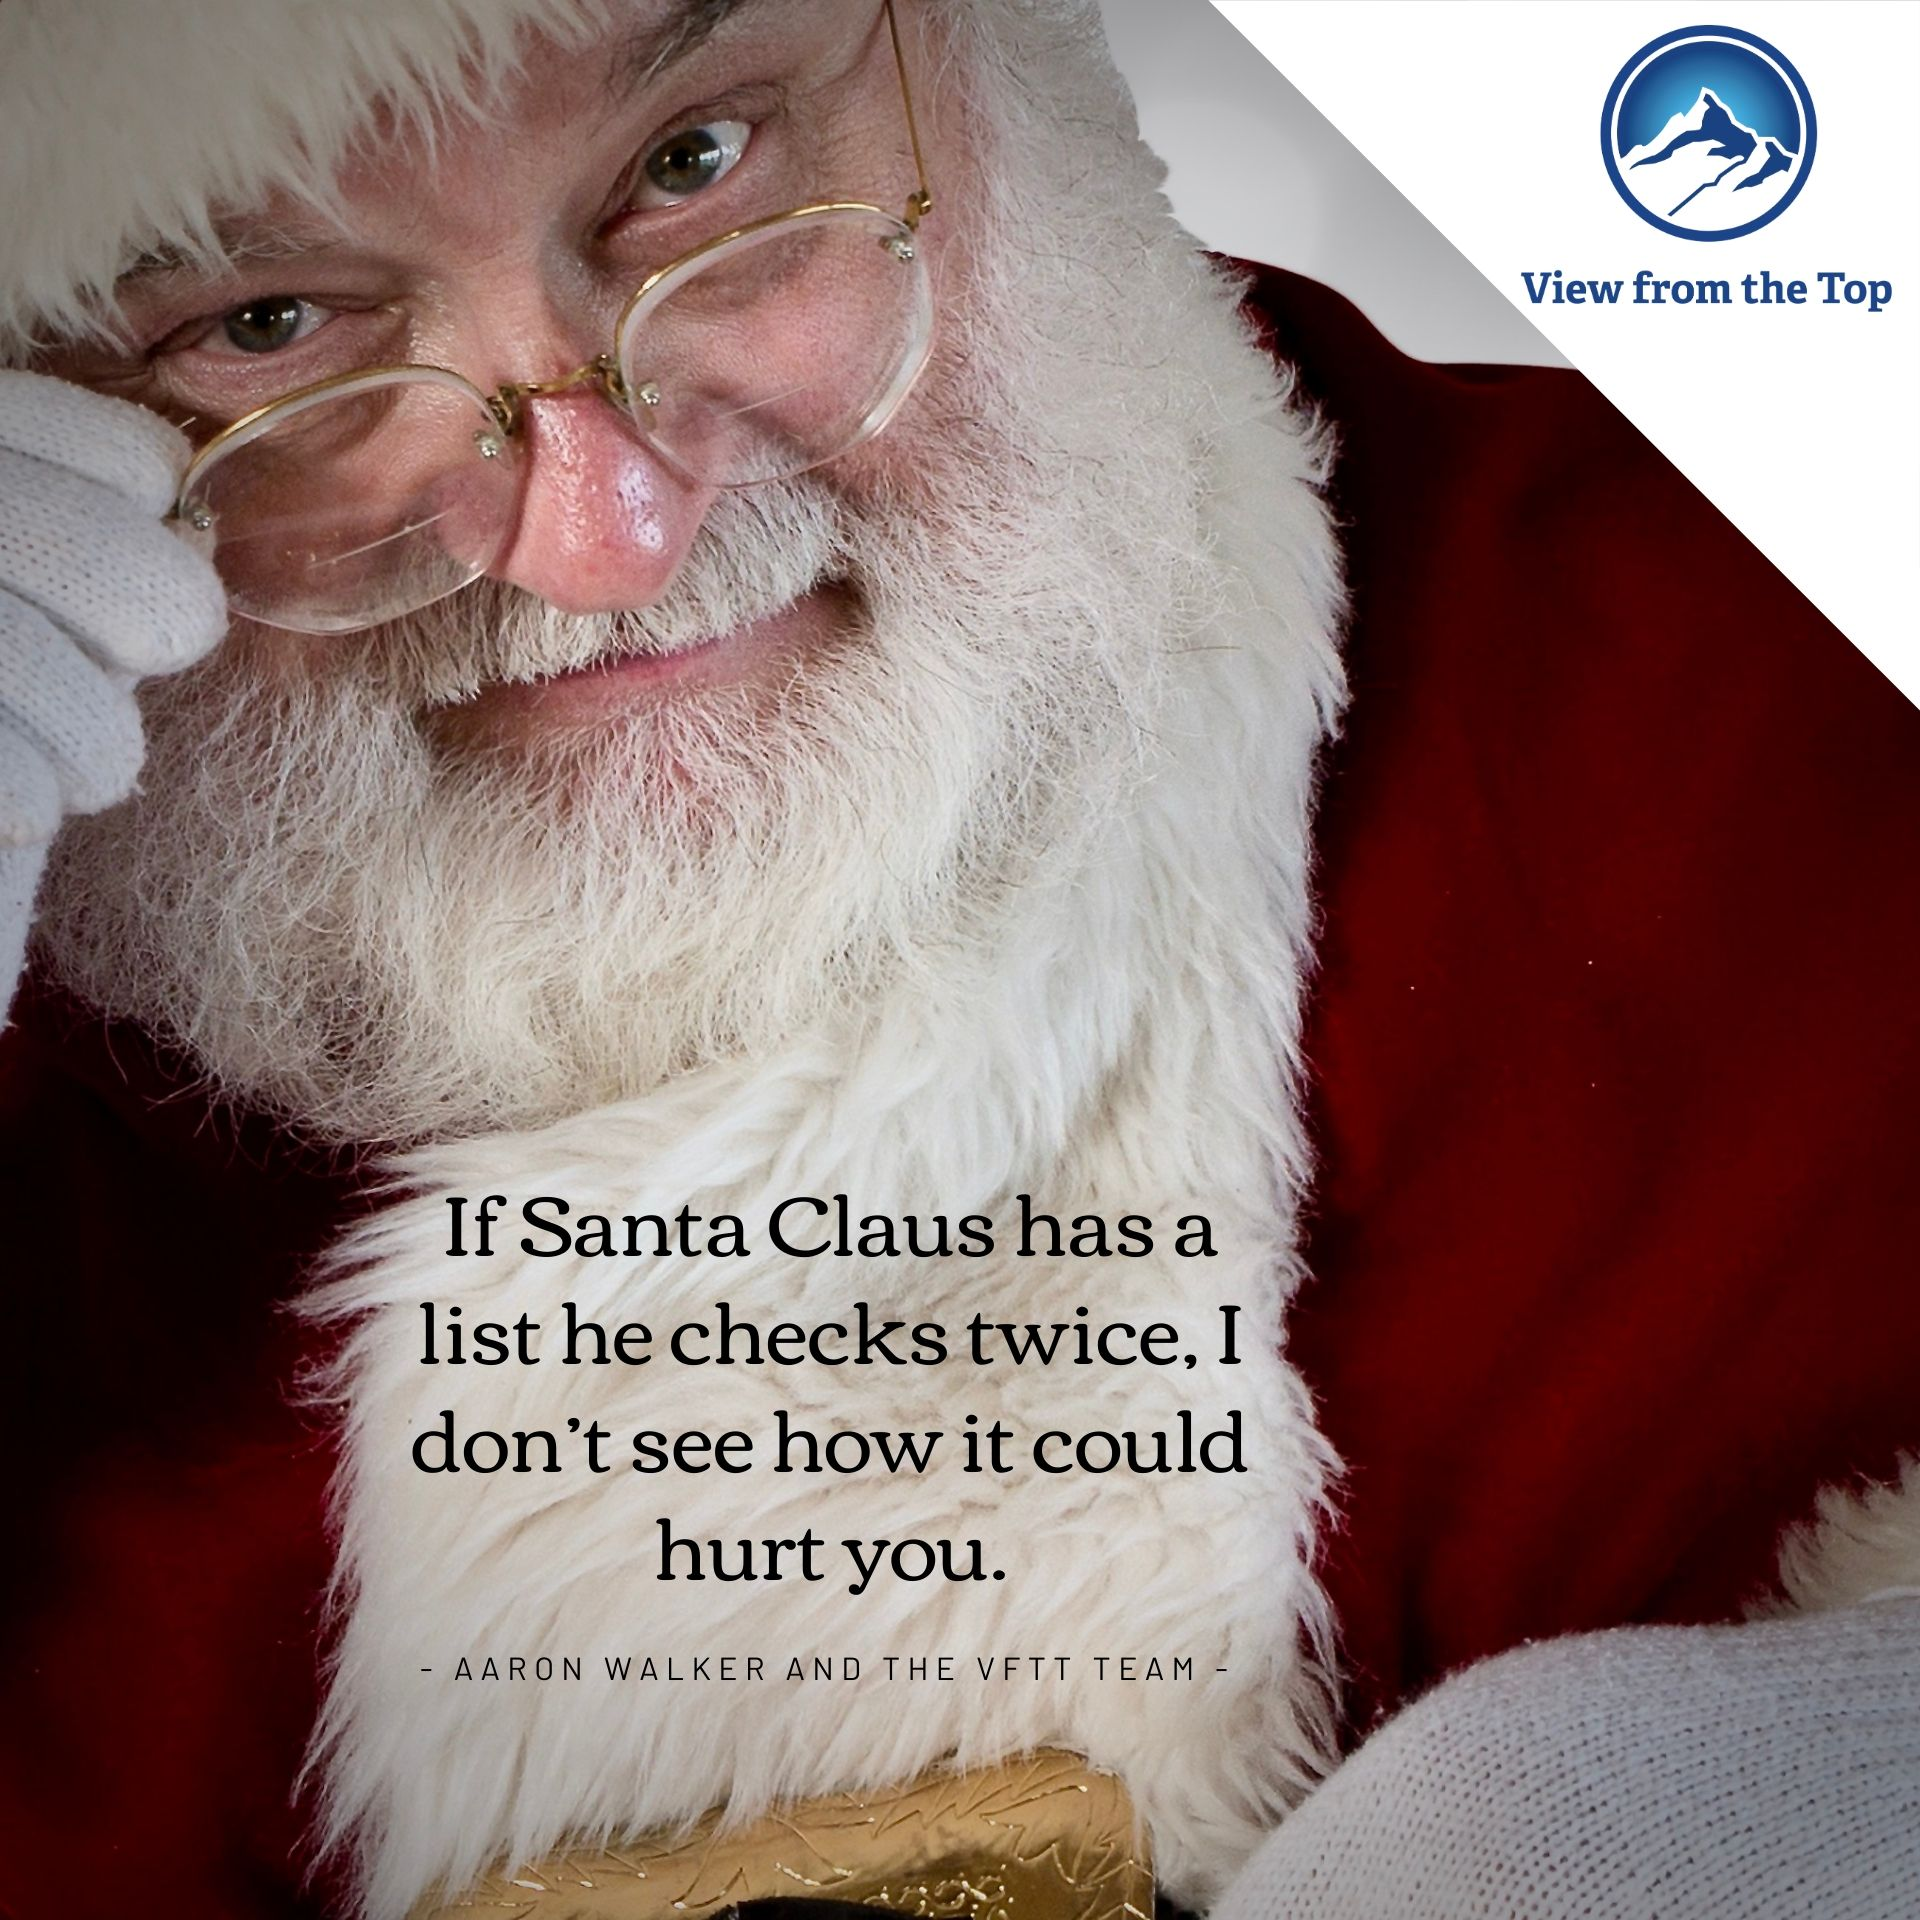 If Santa Claus has a list he checks twice, I don't see how it could hurt you.